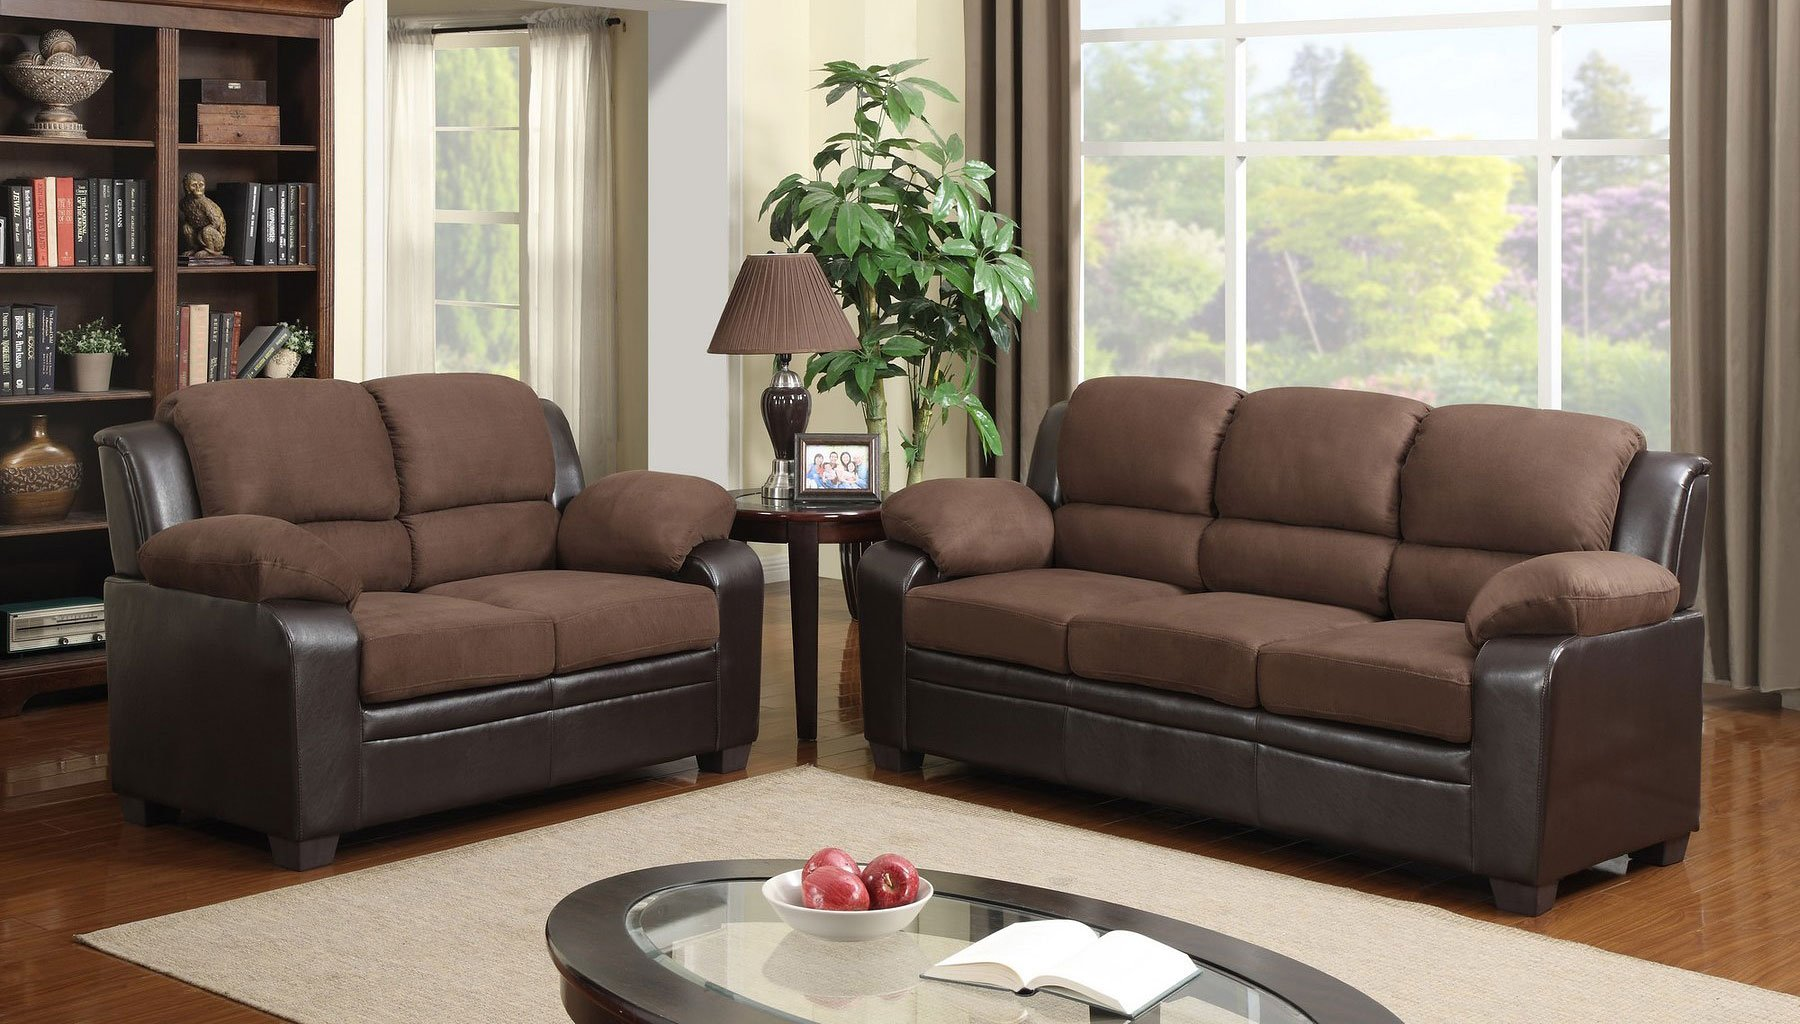 U880018 living room set microfiber and pvc by global - Microfiber living room furniture sets ...